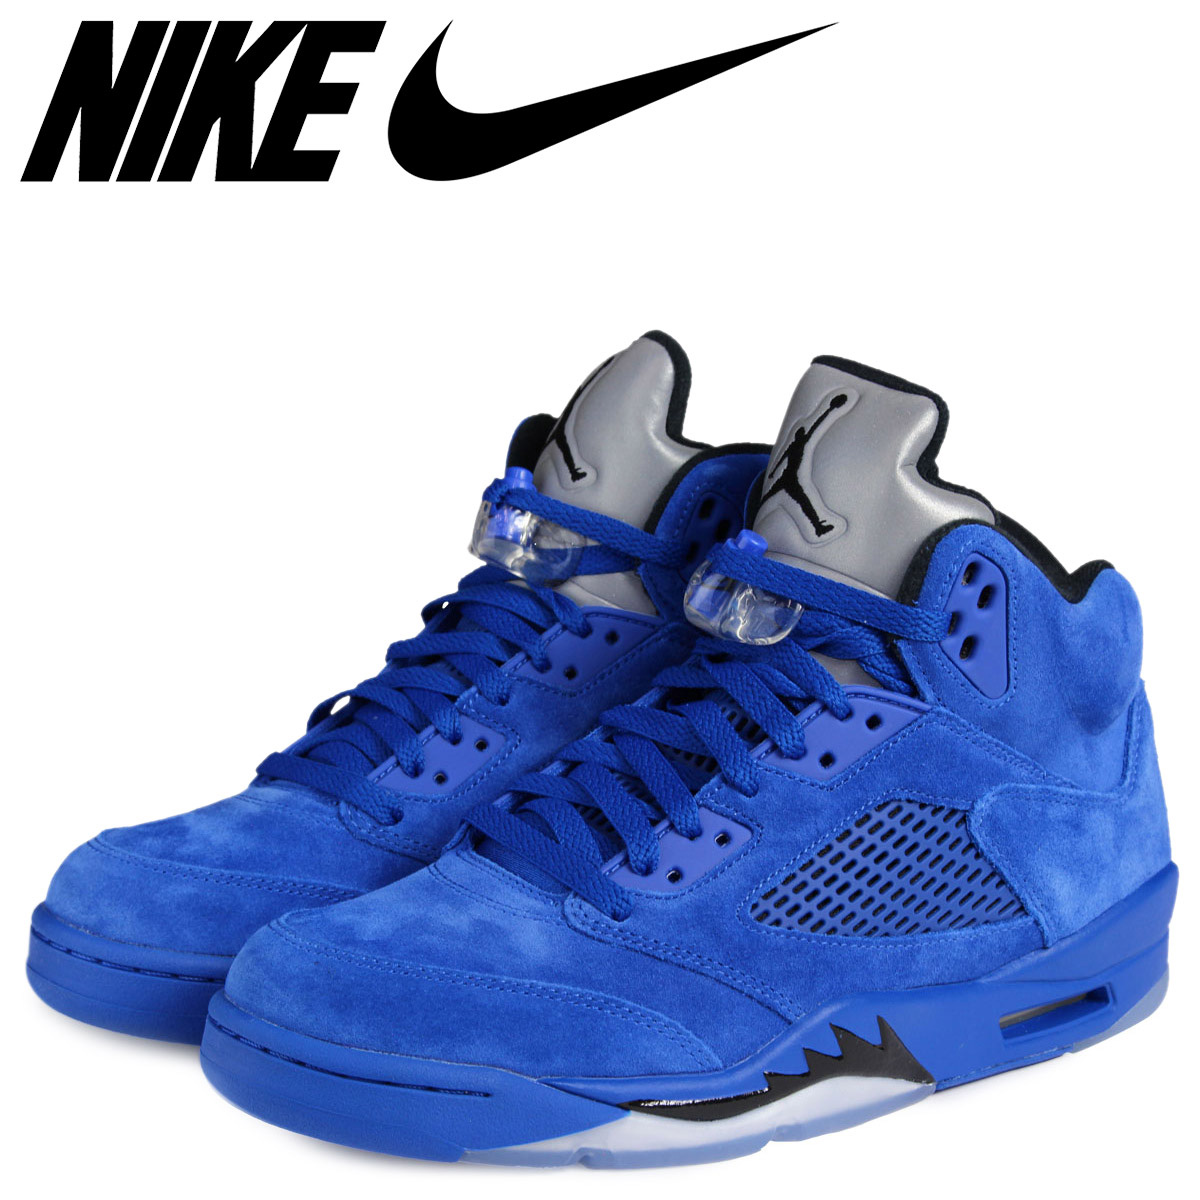 promo code a29d2 9eaab NIKE Nike Air Jordan 5 nostalgic sneakers AIR JORDAN 5 RETRO BLUE SUEDE  136,027-401 men's shoes blue